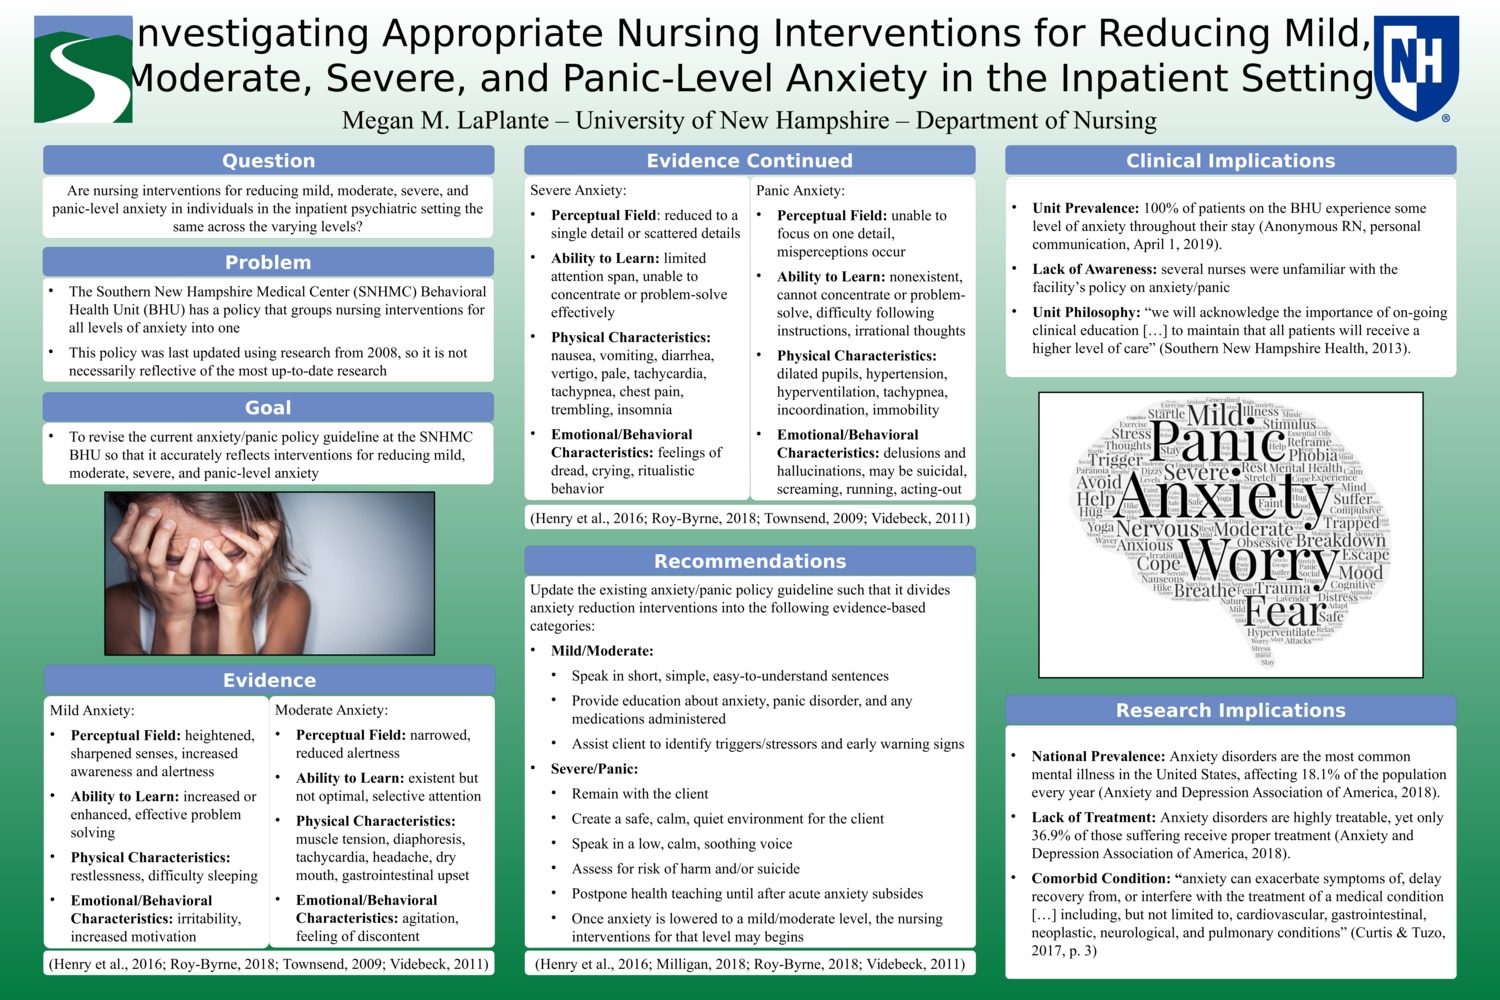 Investigating Appropriate Nursing Interventions For Reducing Mild, Moderate, Severe, And Panic-Level Anxiety In The Inpatient Setting by mml1001